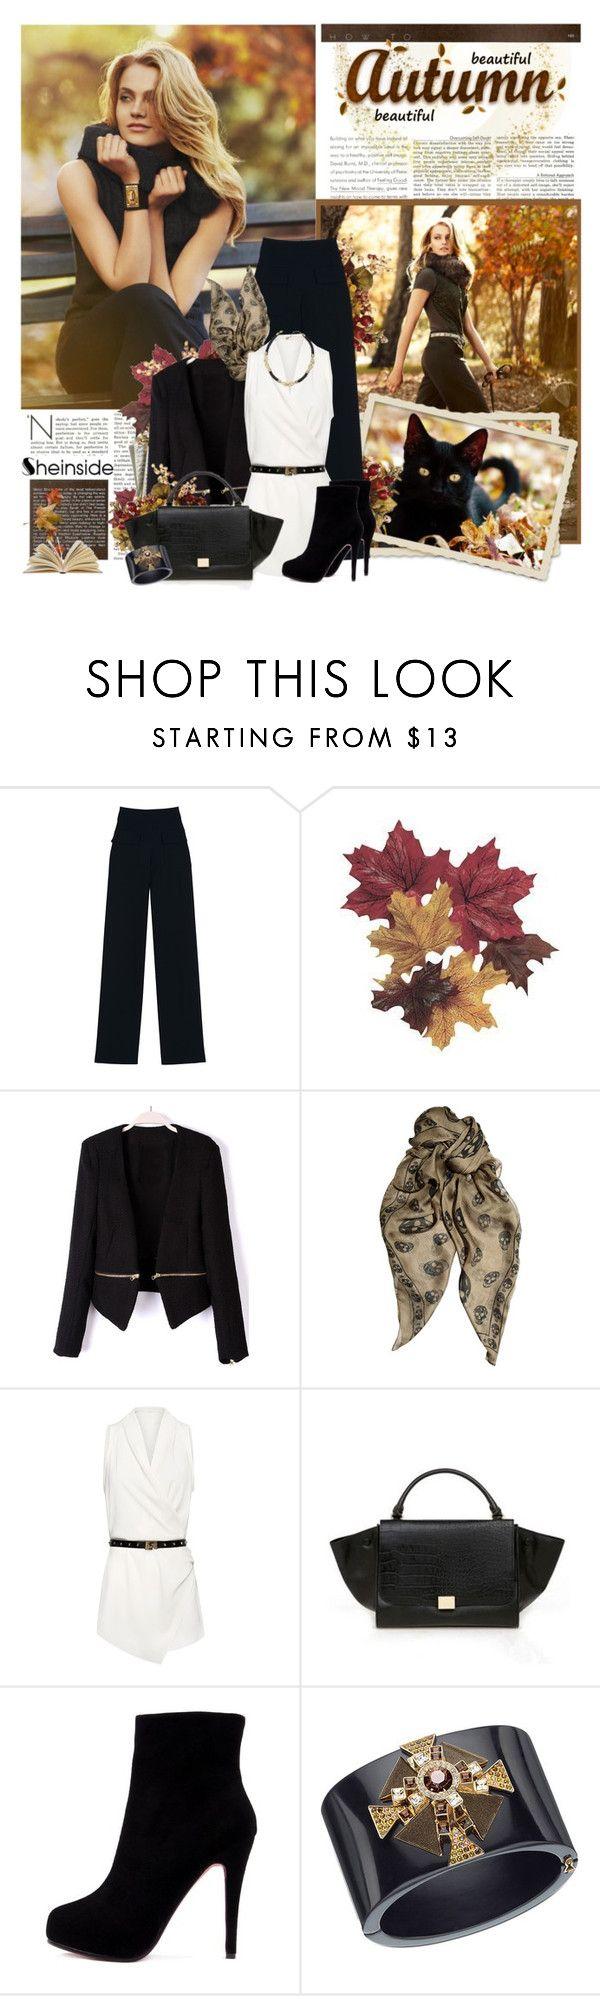 """""""Black & Chic"""" by violetta-valery ❤ liked on Polyvore featuring Paul & Joe, Bullet, Alexander McQueen, MANGO, Lacoste, Swarovski, ankle boots, wide leg trousers, white and sheinside"""